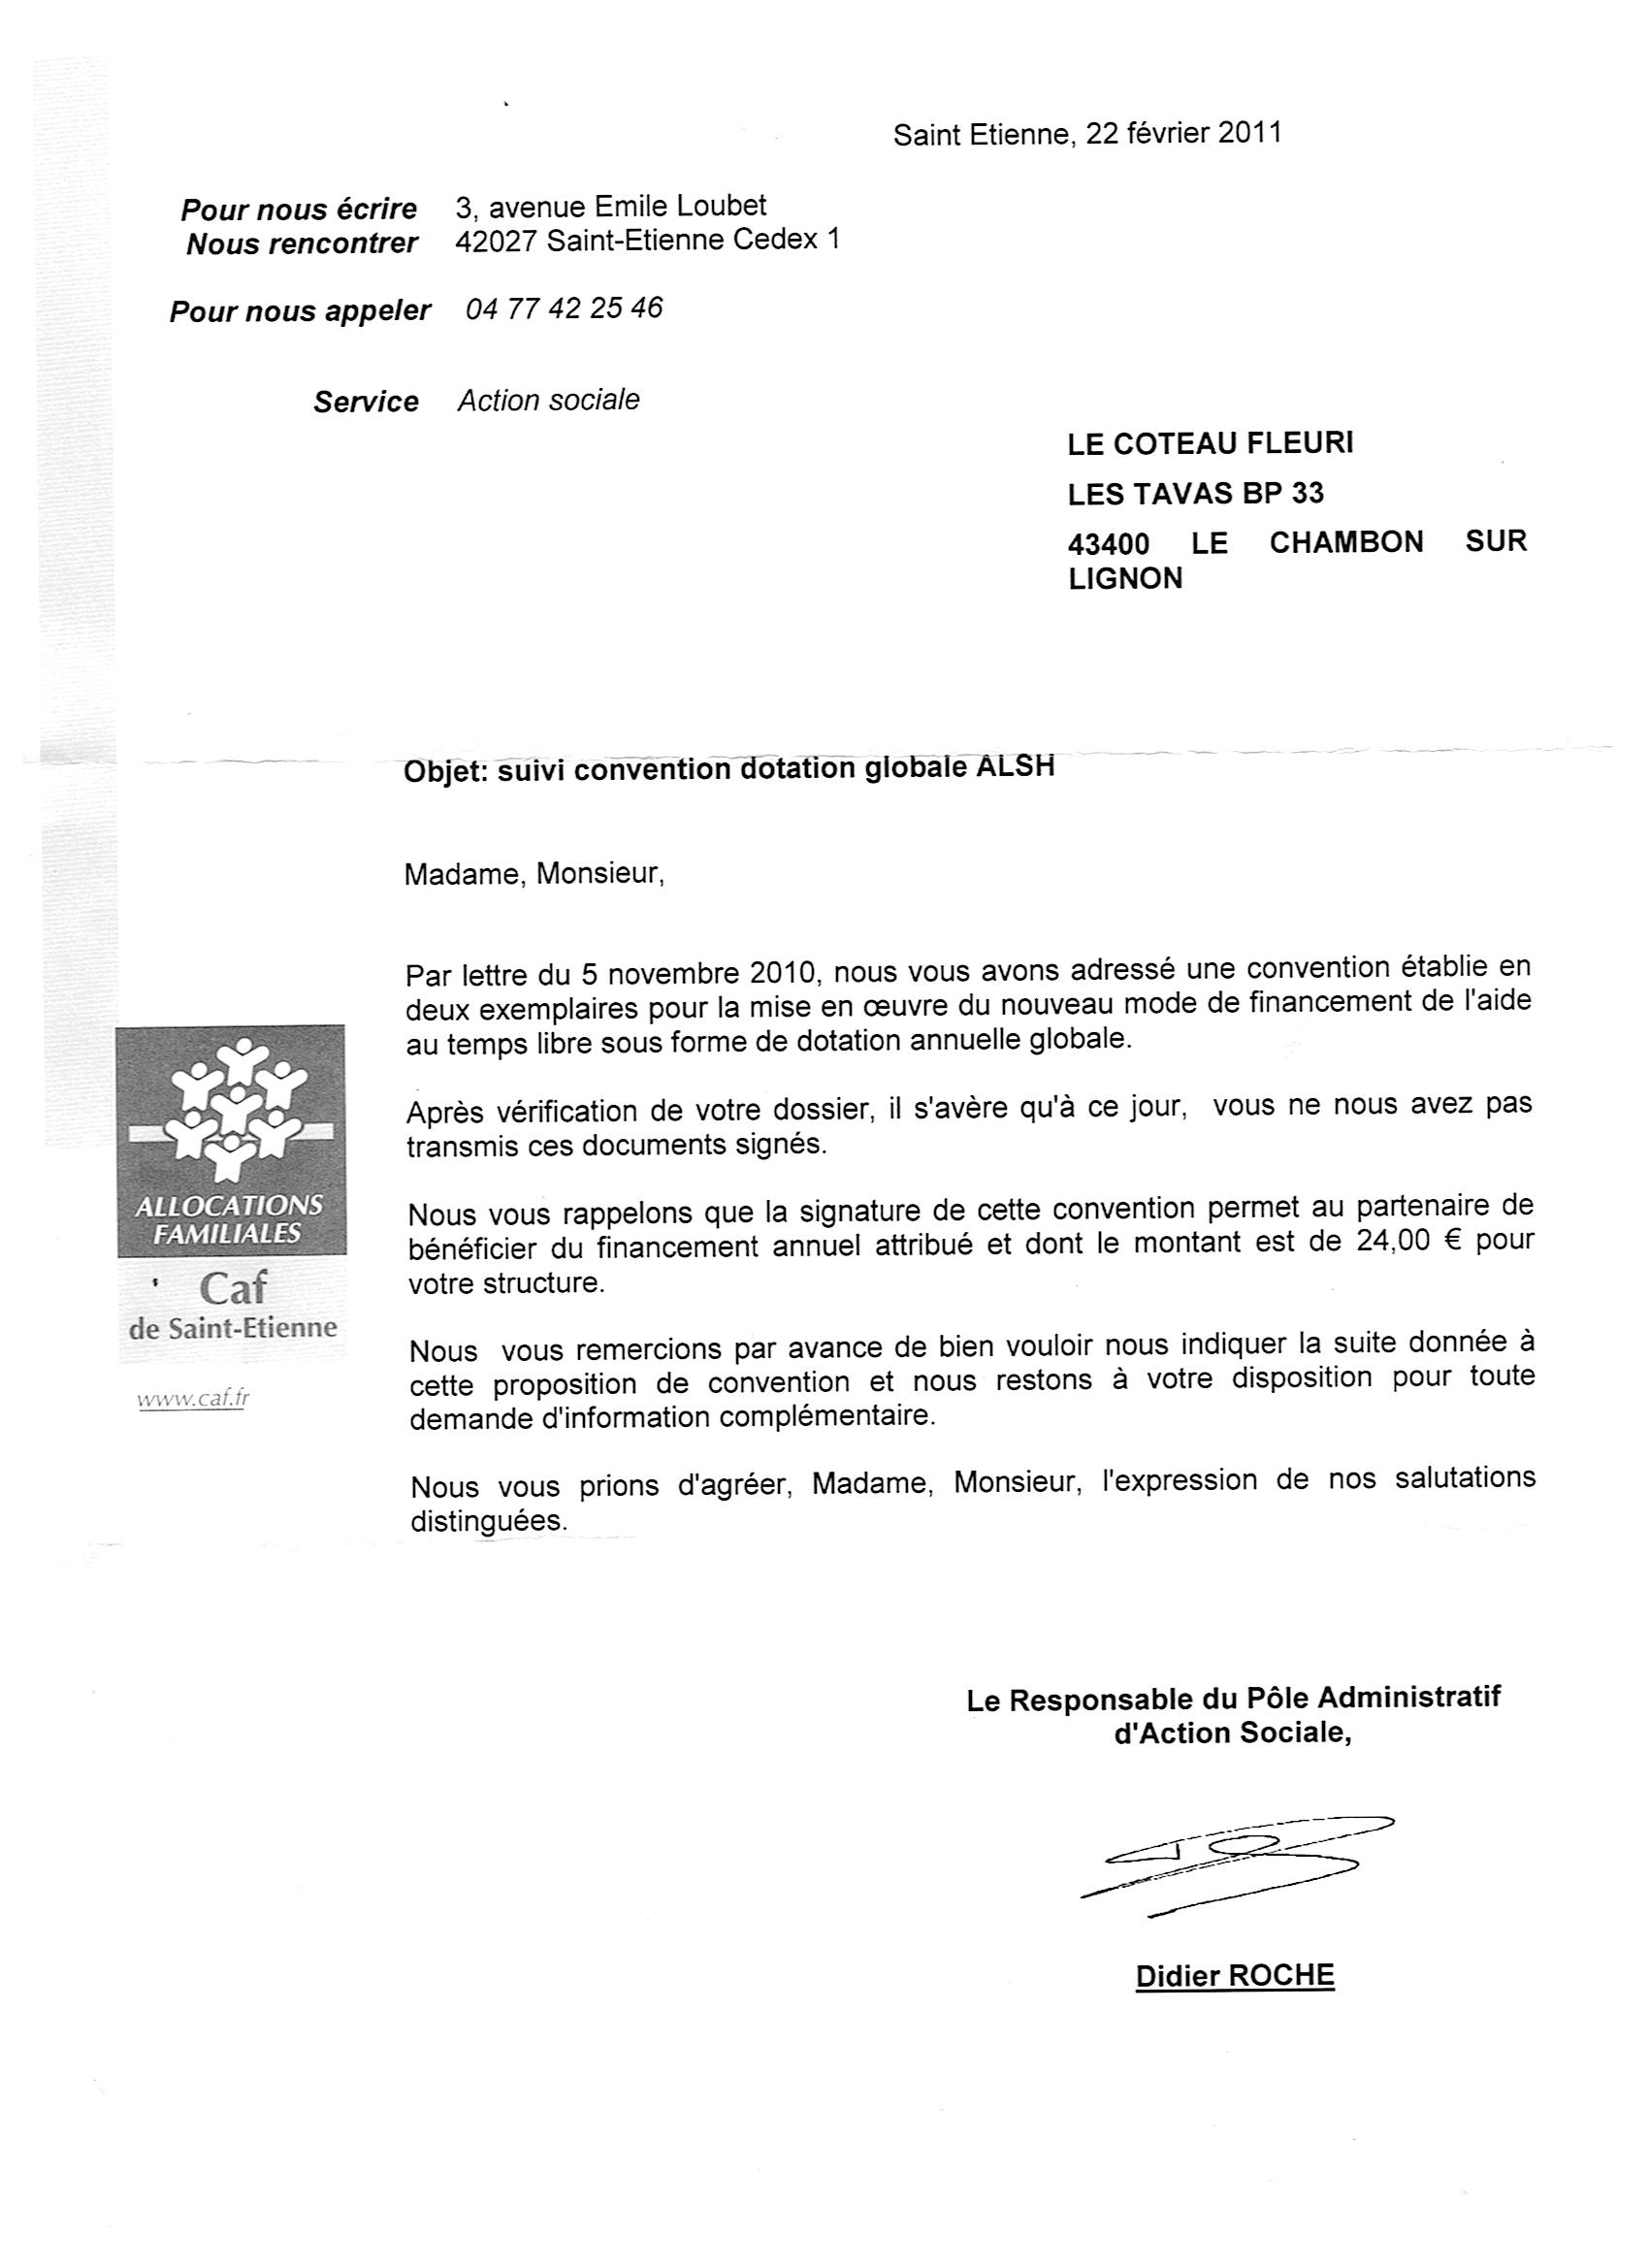 Image Courrier courrier caf 001